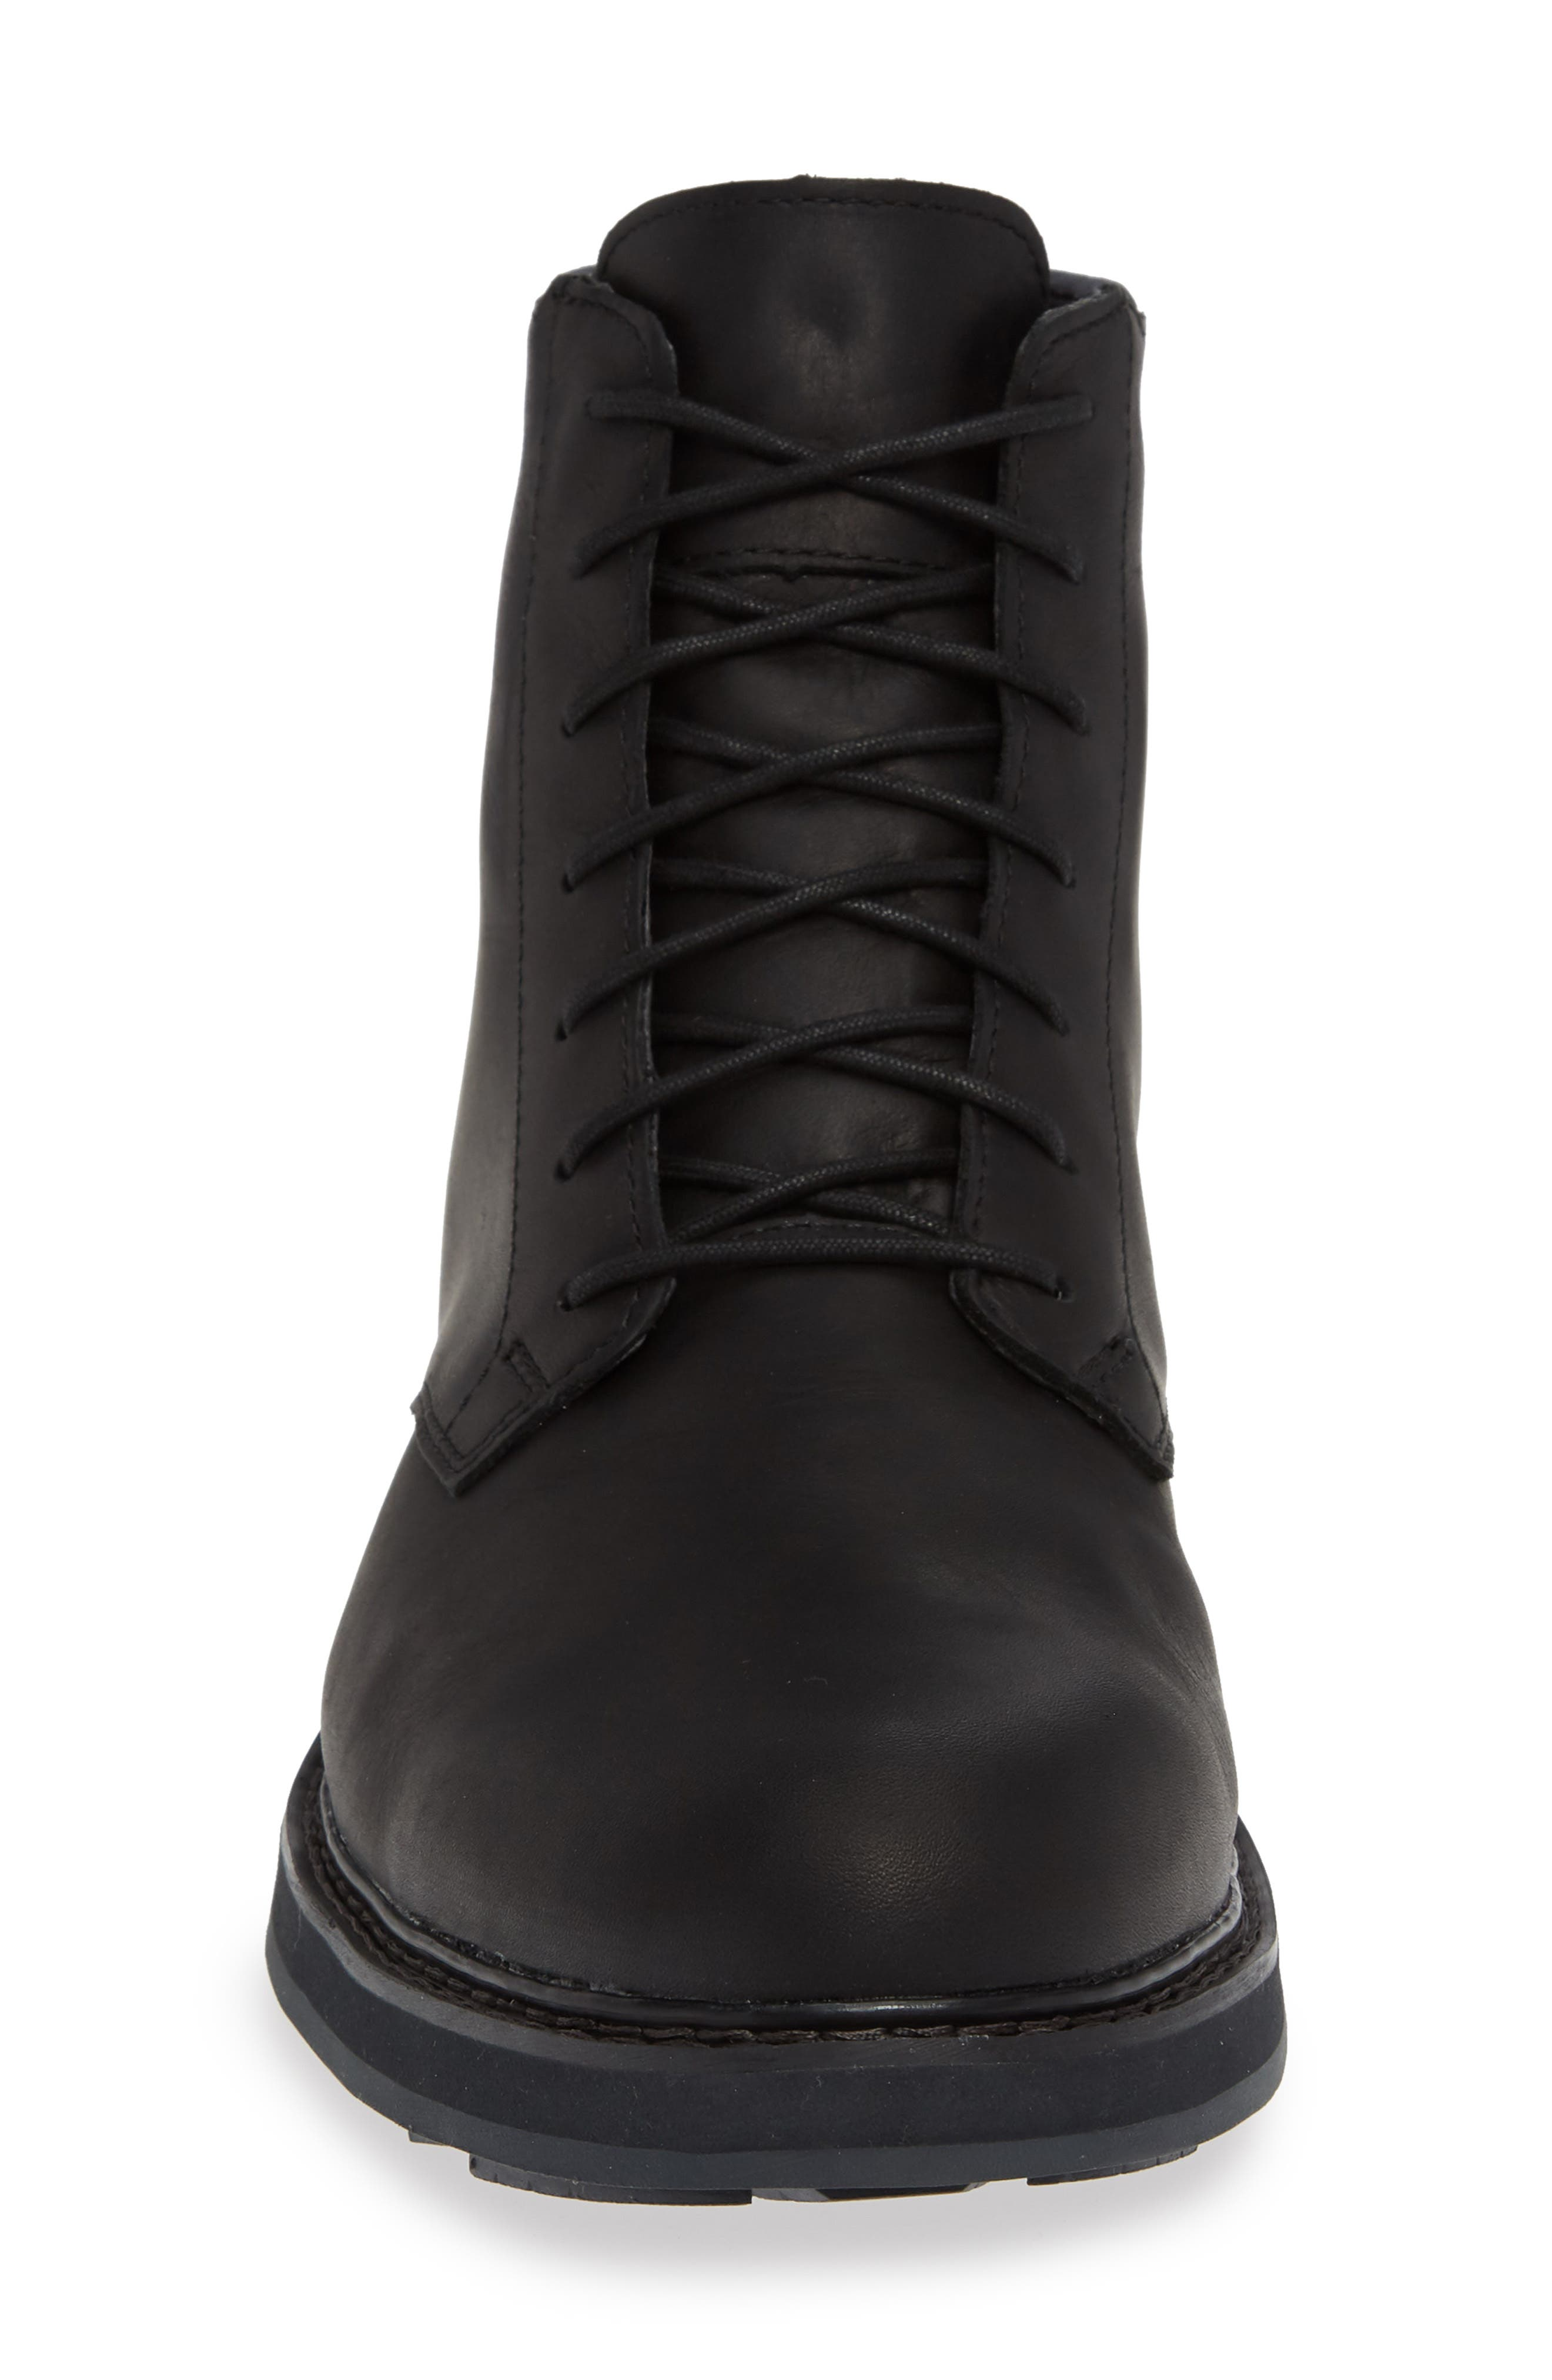 Squall Canyon Waterproof Plain Toe Boot,                             Alternate thumbnail 4, color,                             BLACK LEATHER